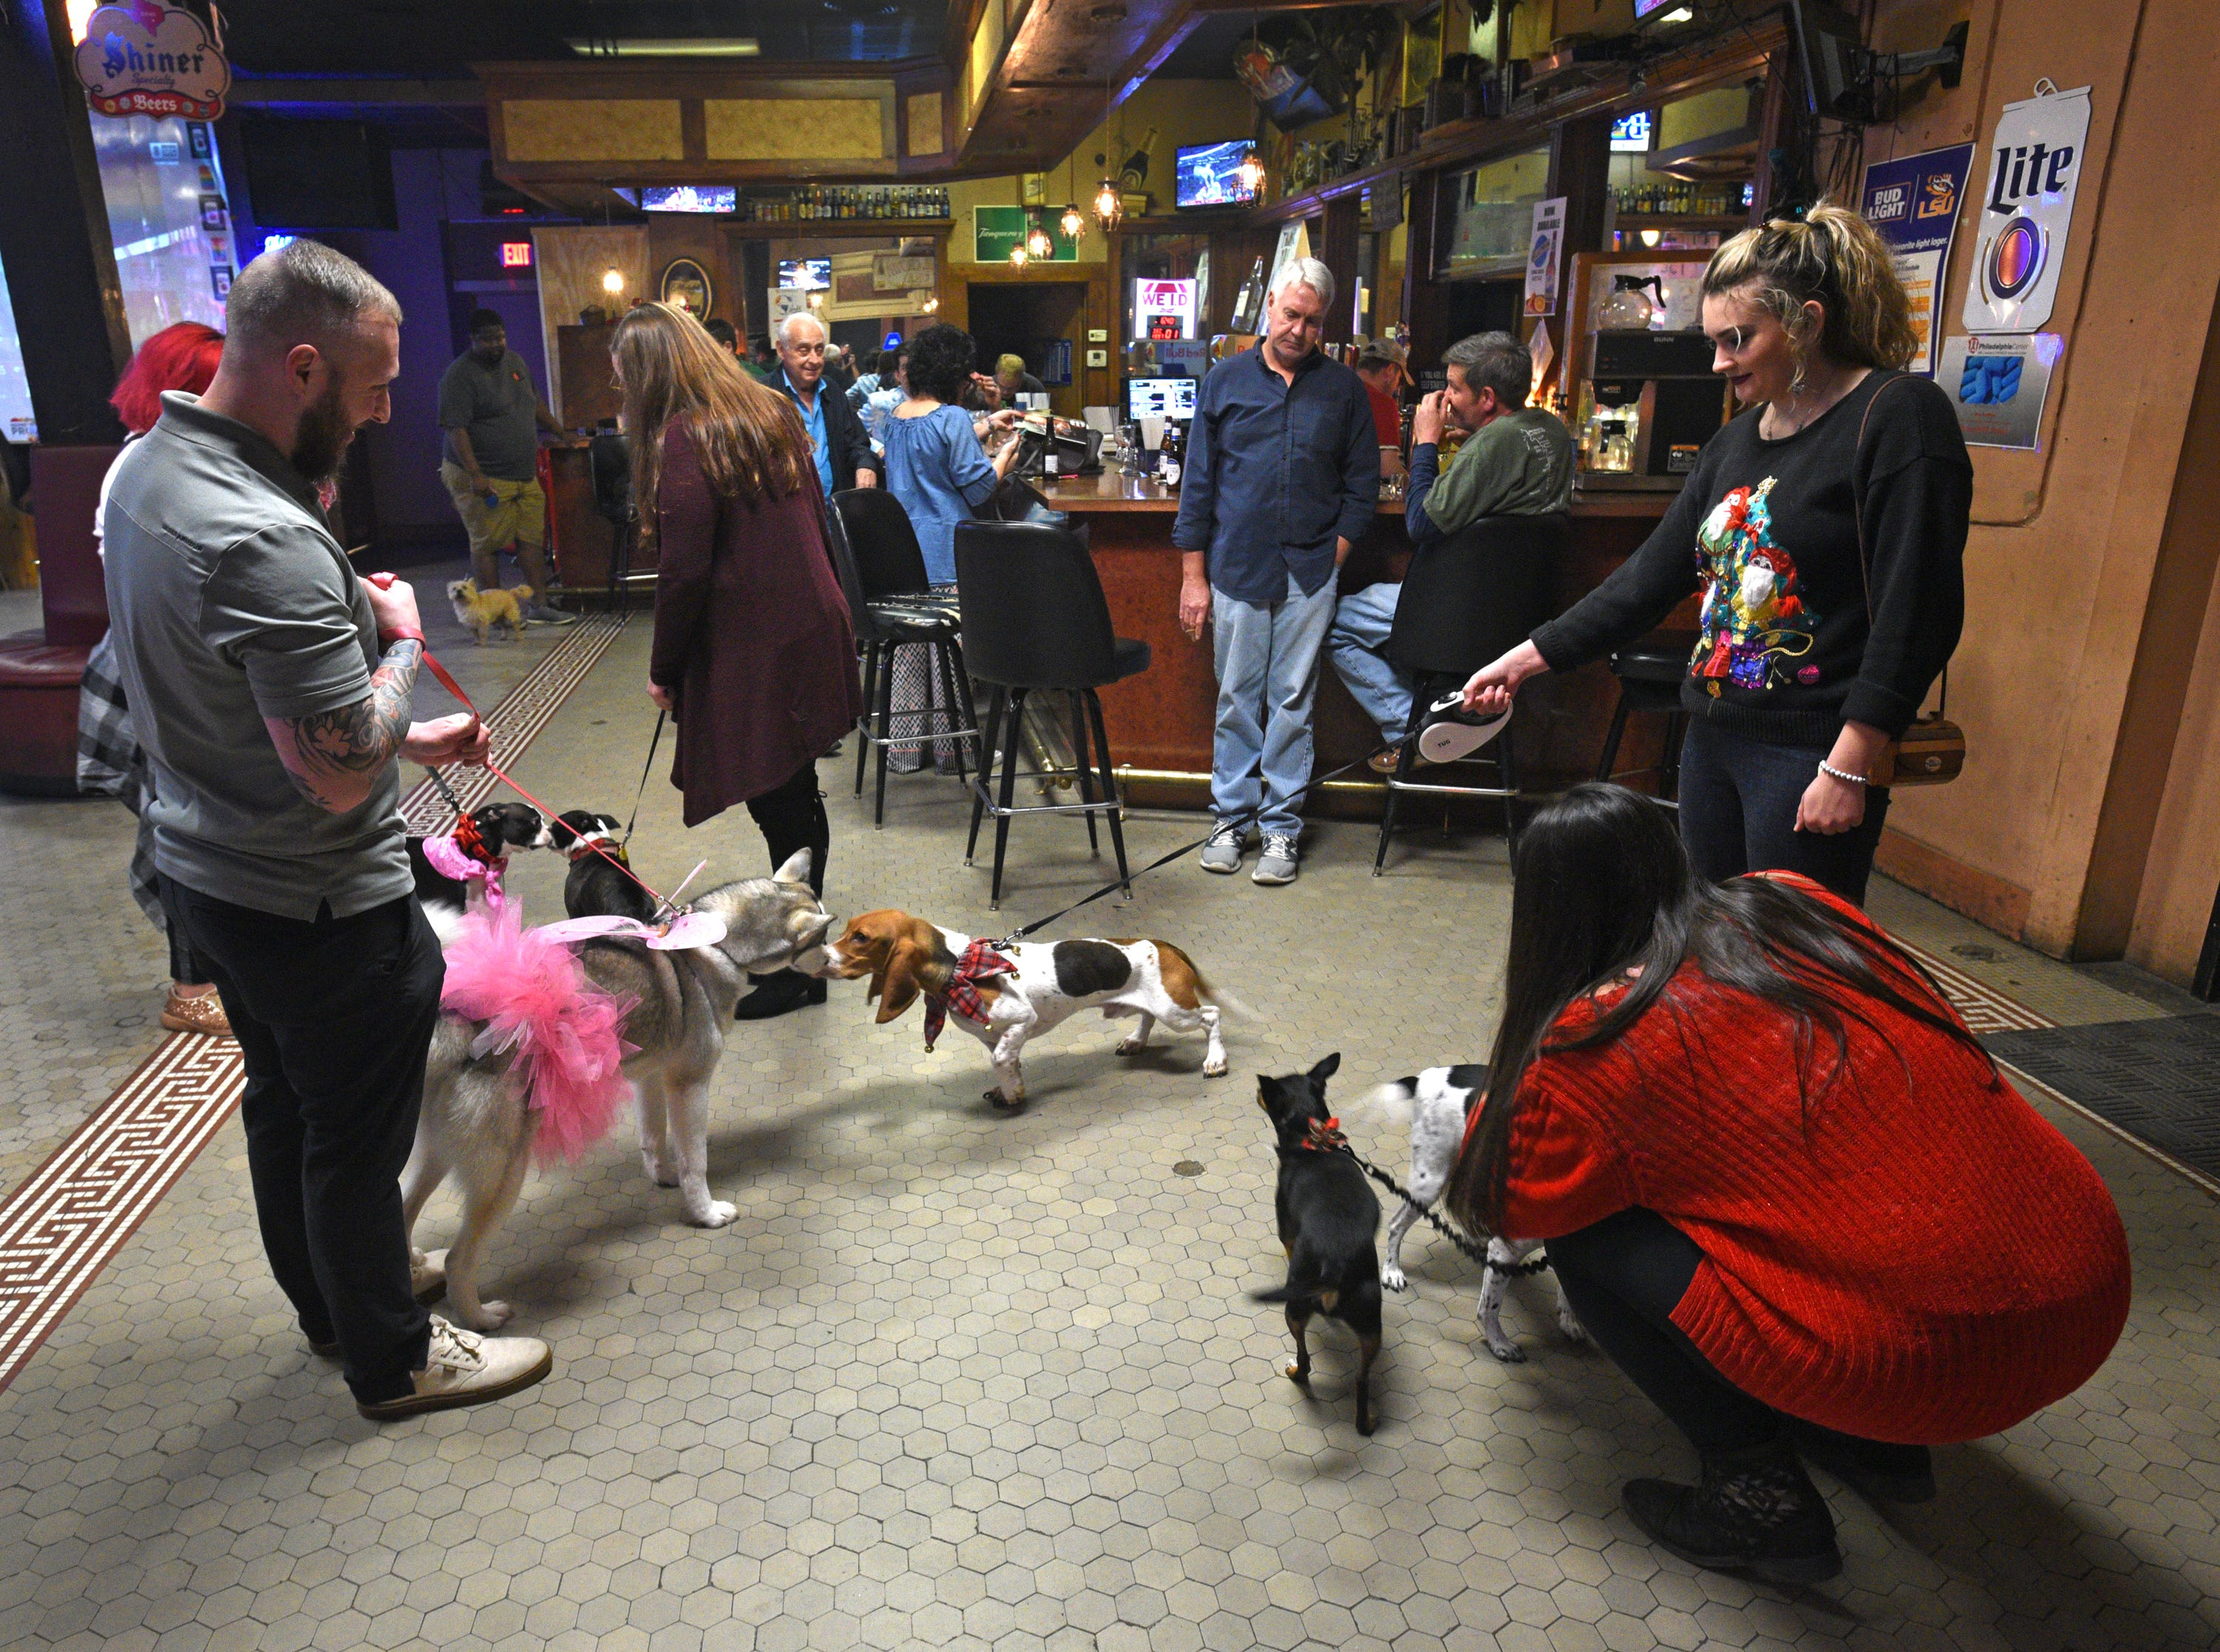 The 3rd Annual Mutts & Struts benefitting LA Baby Mommas and Rhino and Deuce rescue was held at Shreveport's Central Station.